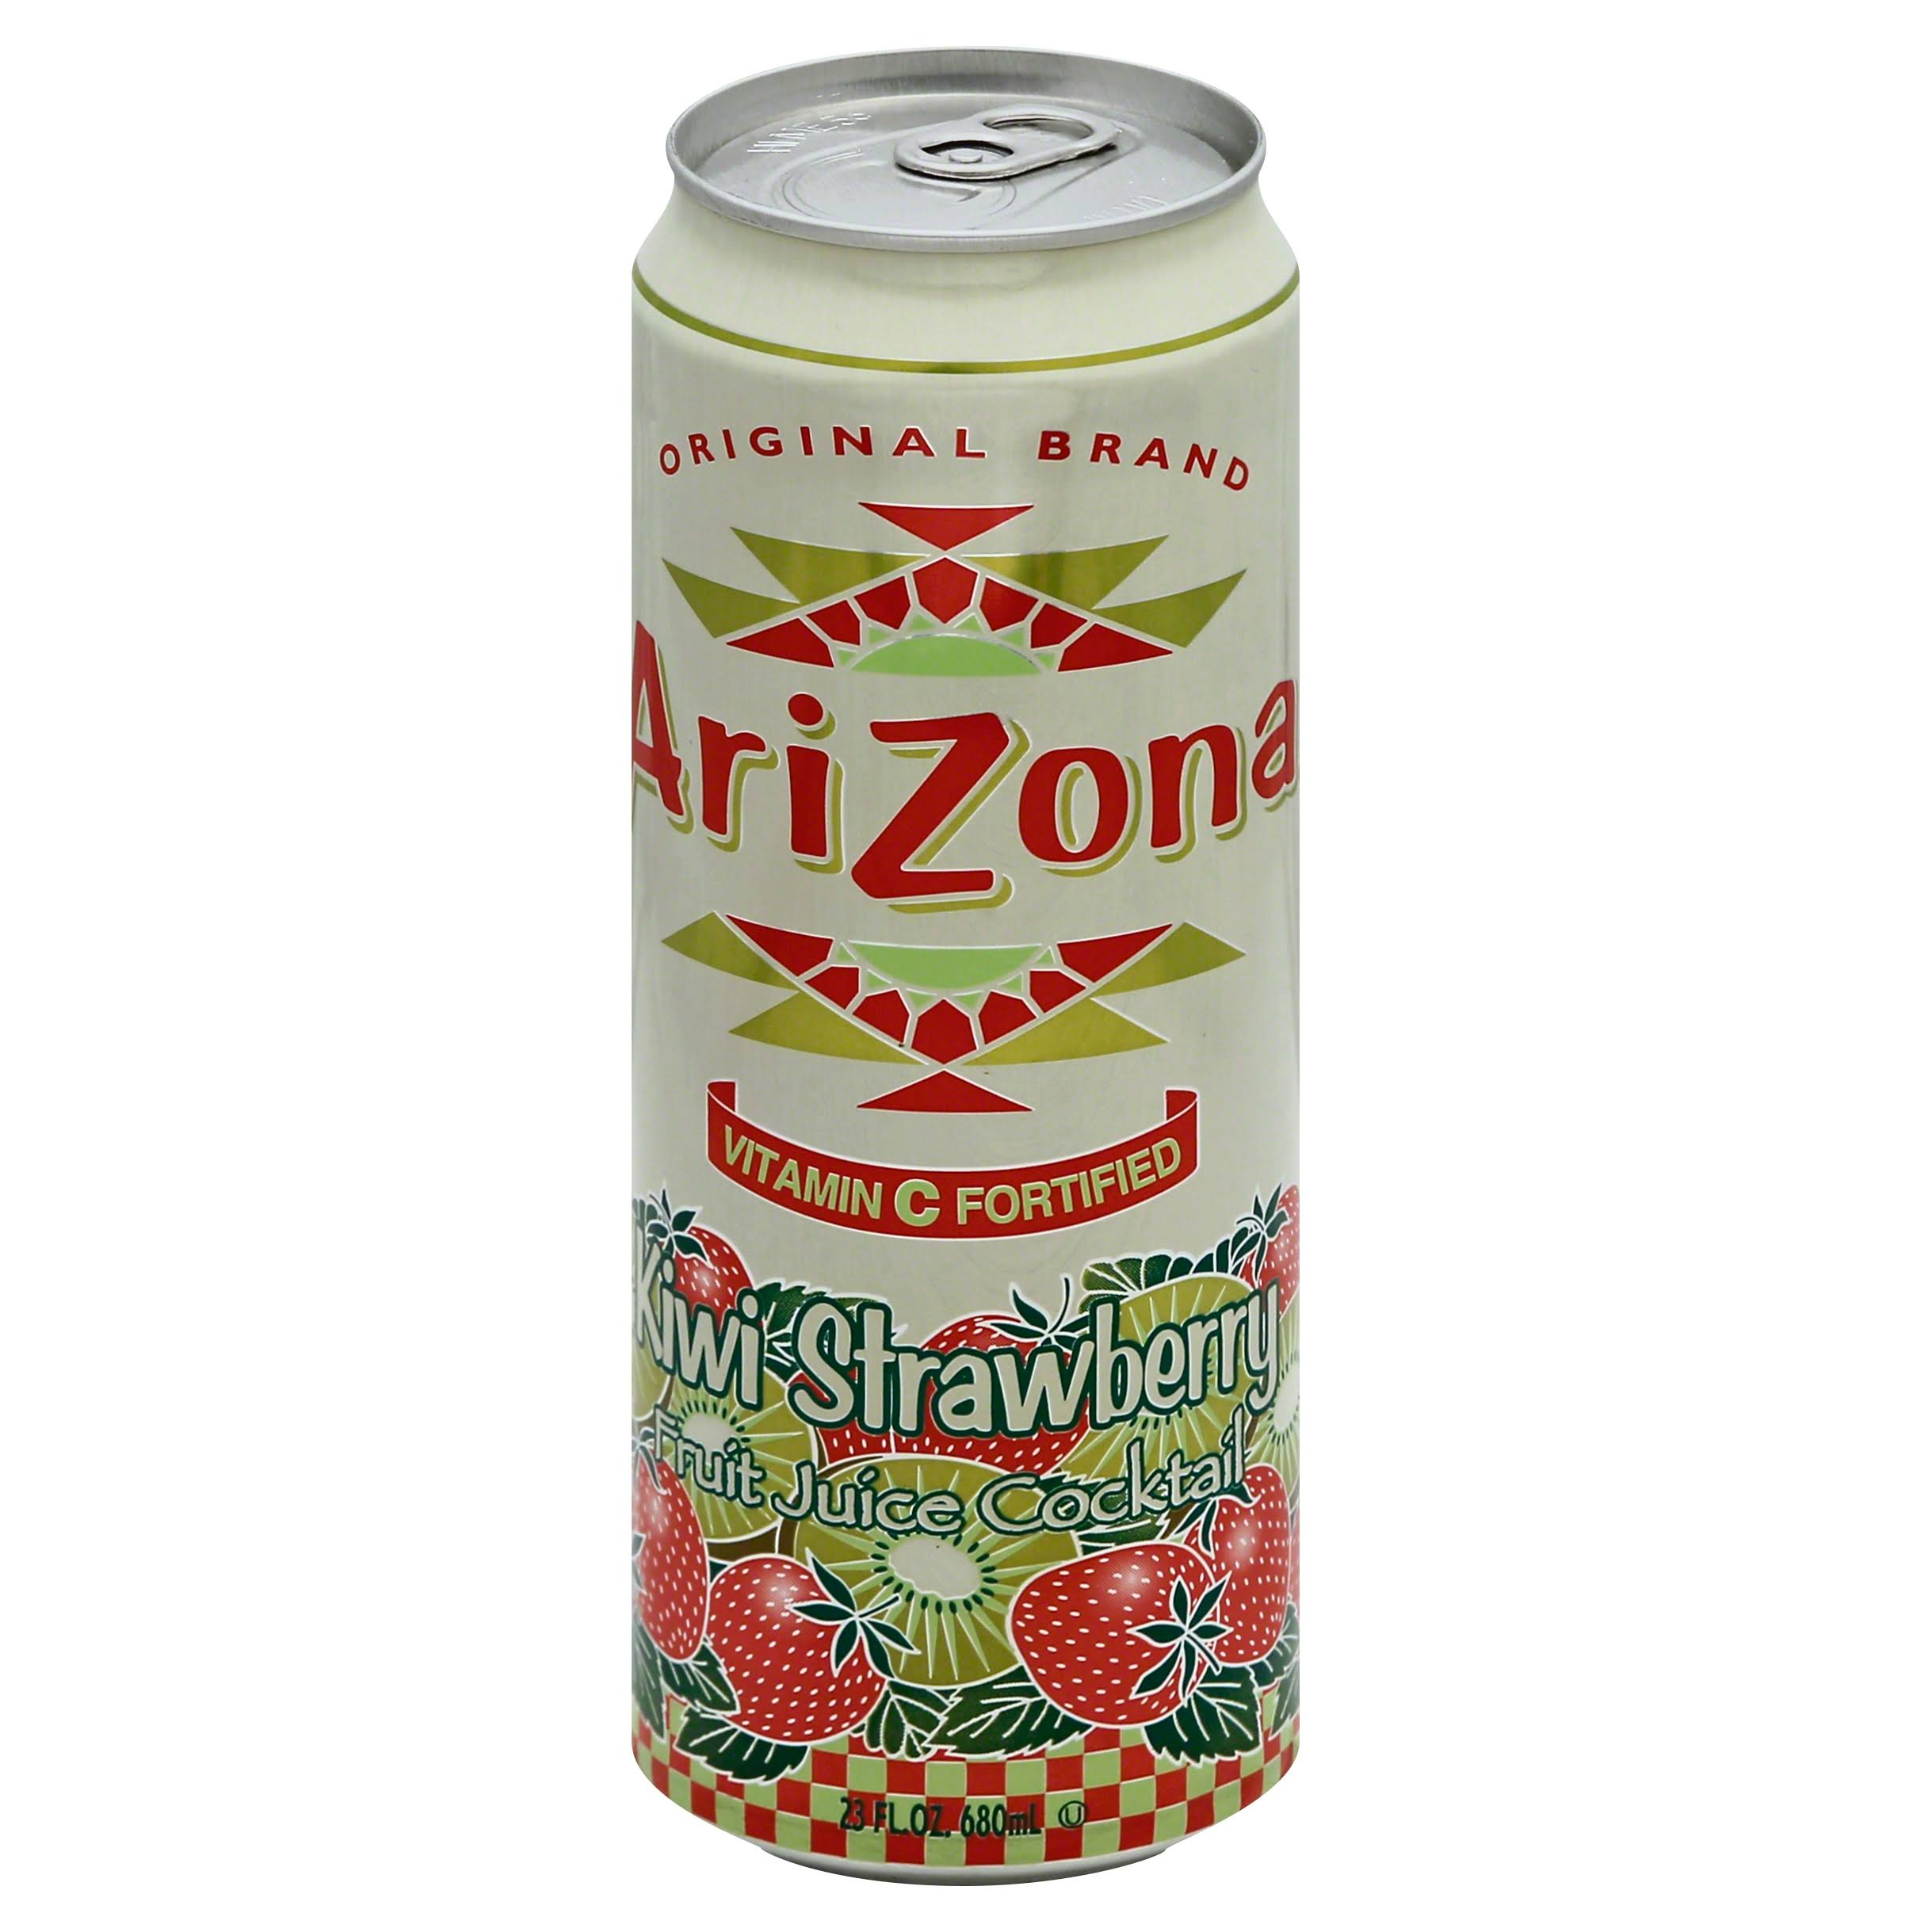 Arizona Kiwi Strawberry Juice Drink - 680ml